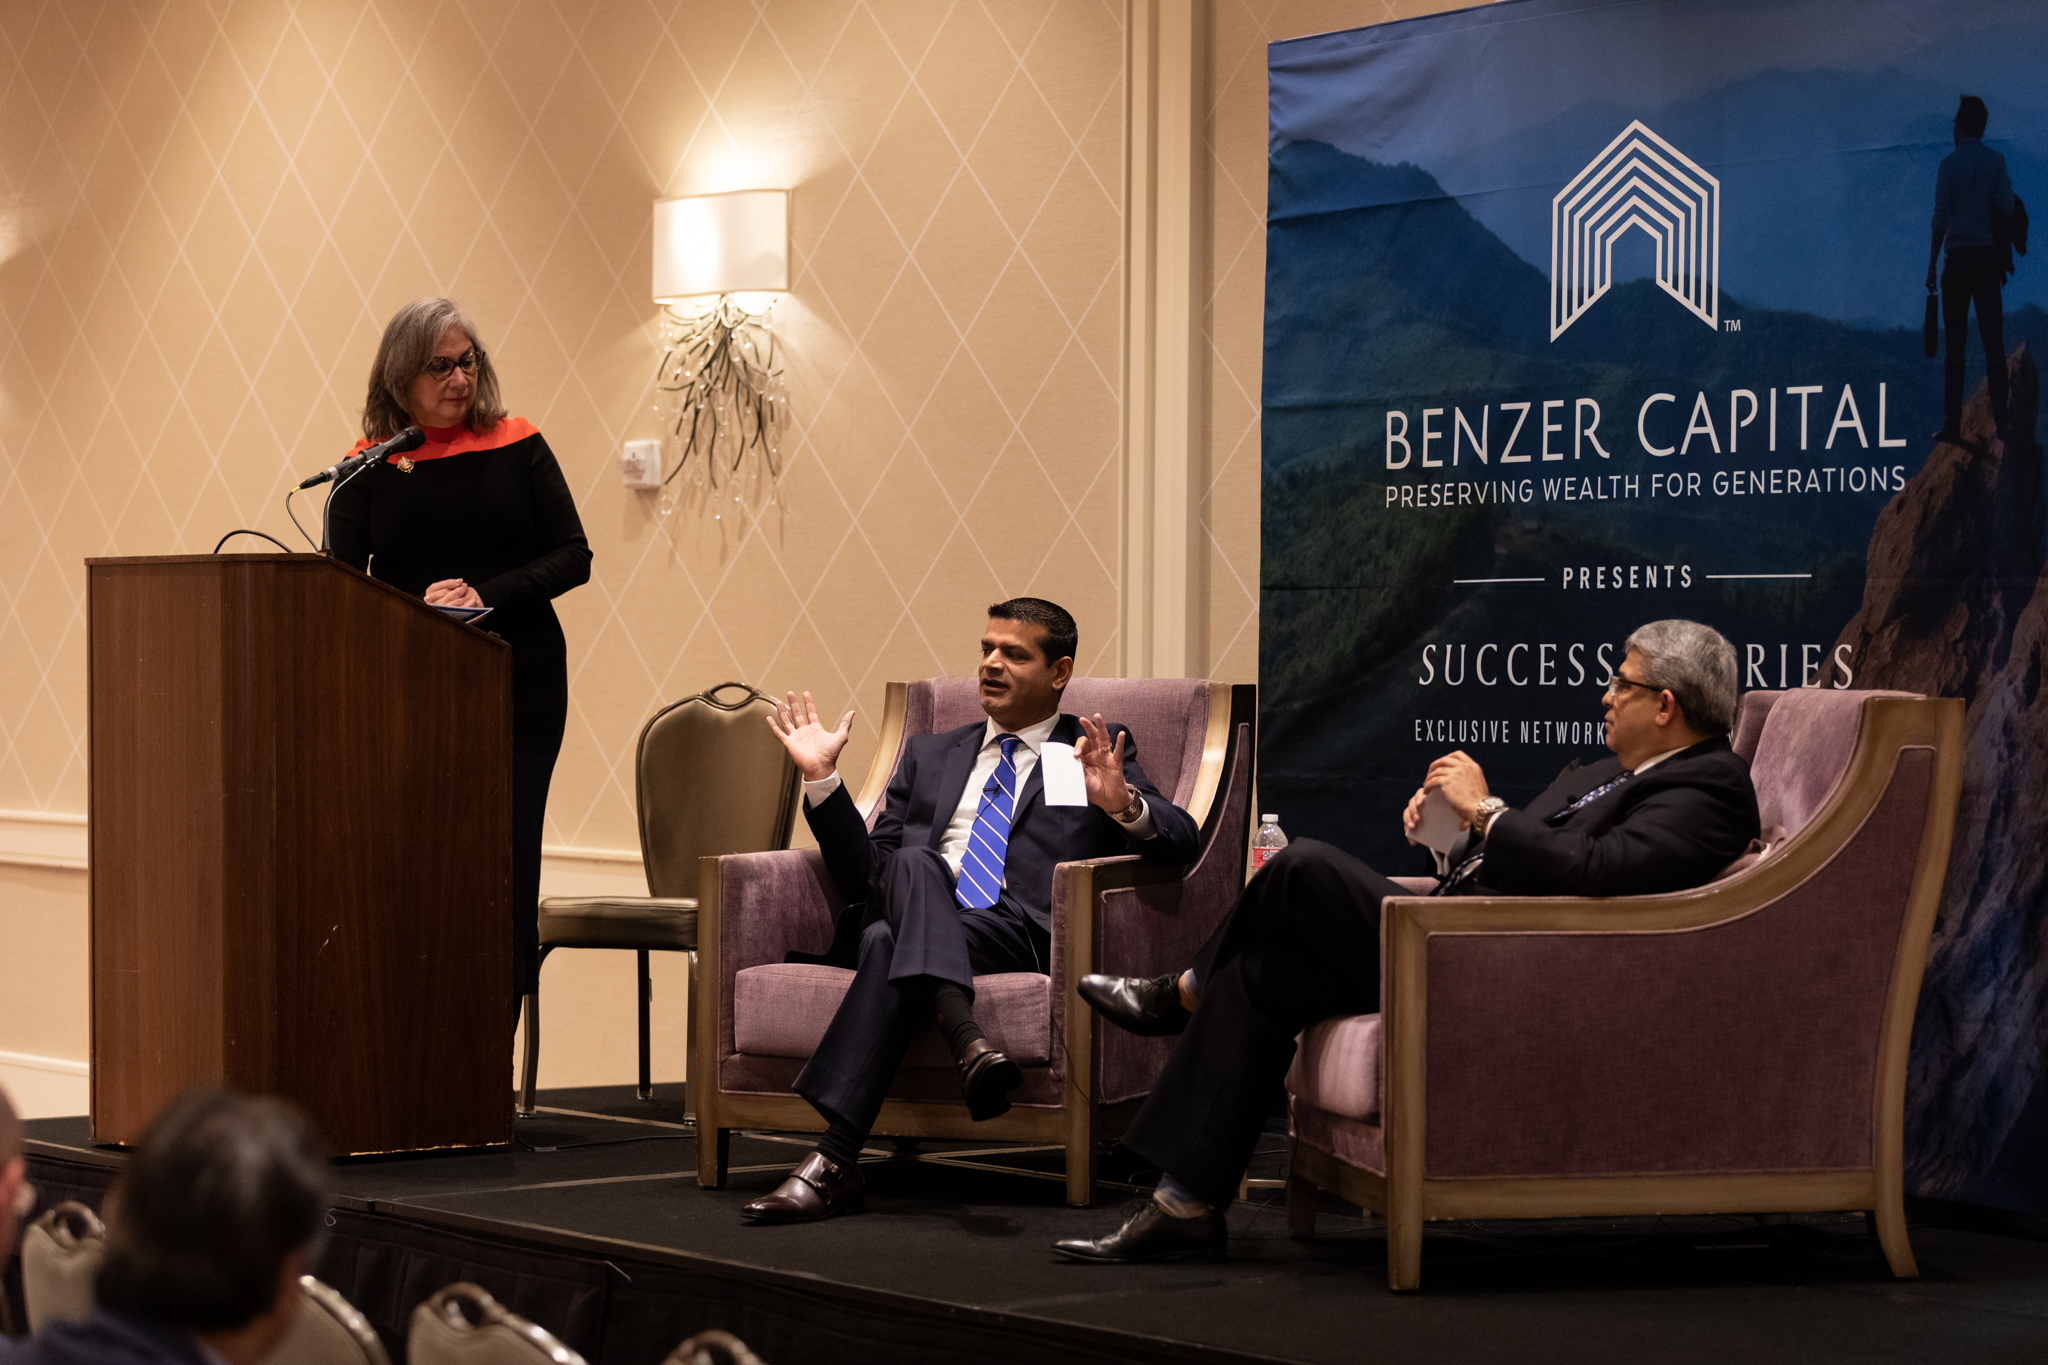 Benzer Capital_Briar Club event_web ready image-136.jpg